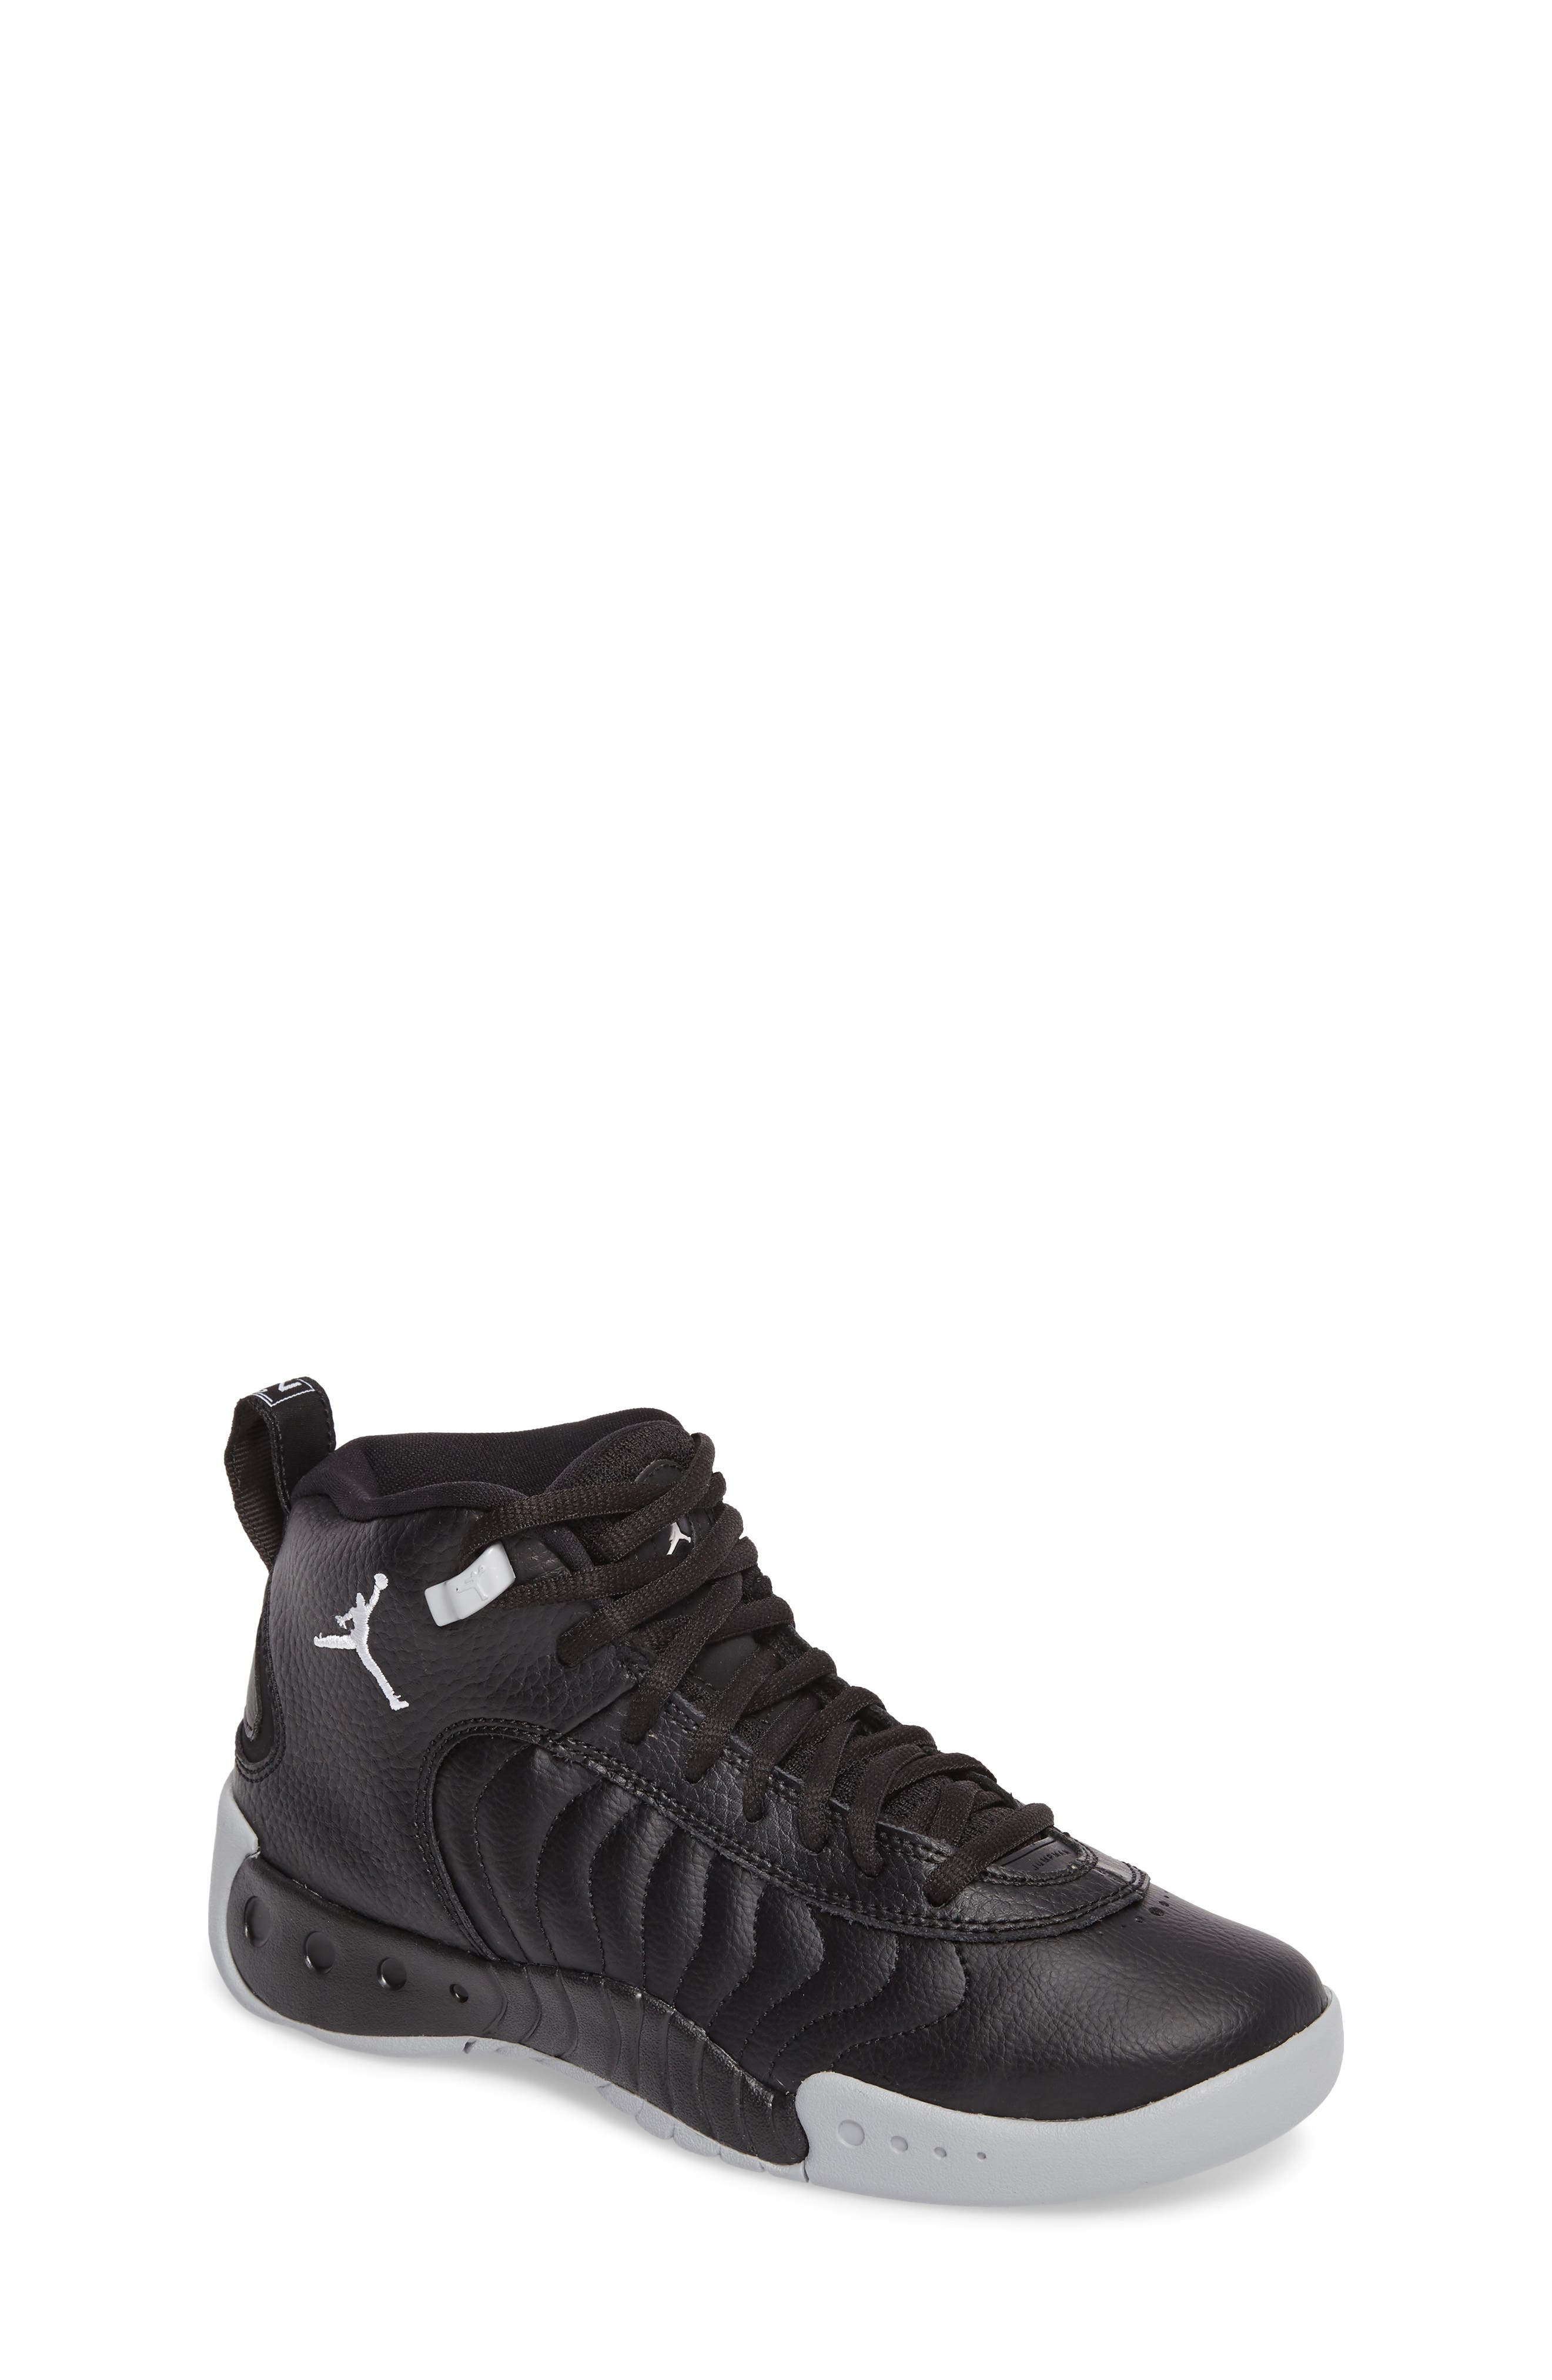 Jumpman Pro BG Mid Top Sneaker,                             Main thumbnail 1, color,                             Black/ White-Wolf Grey